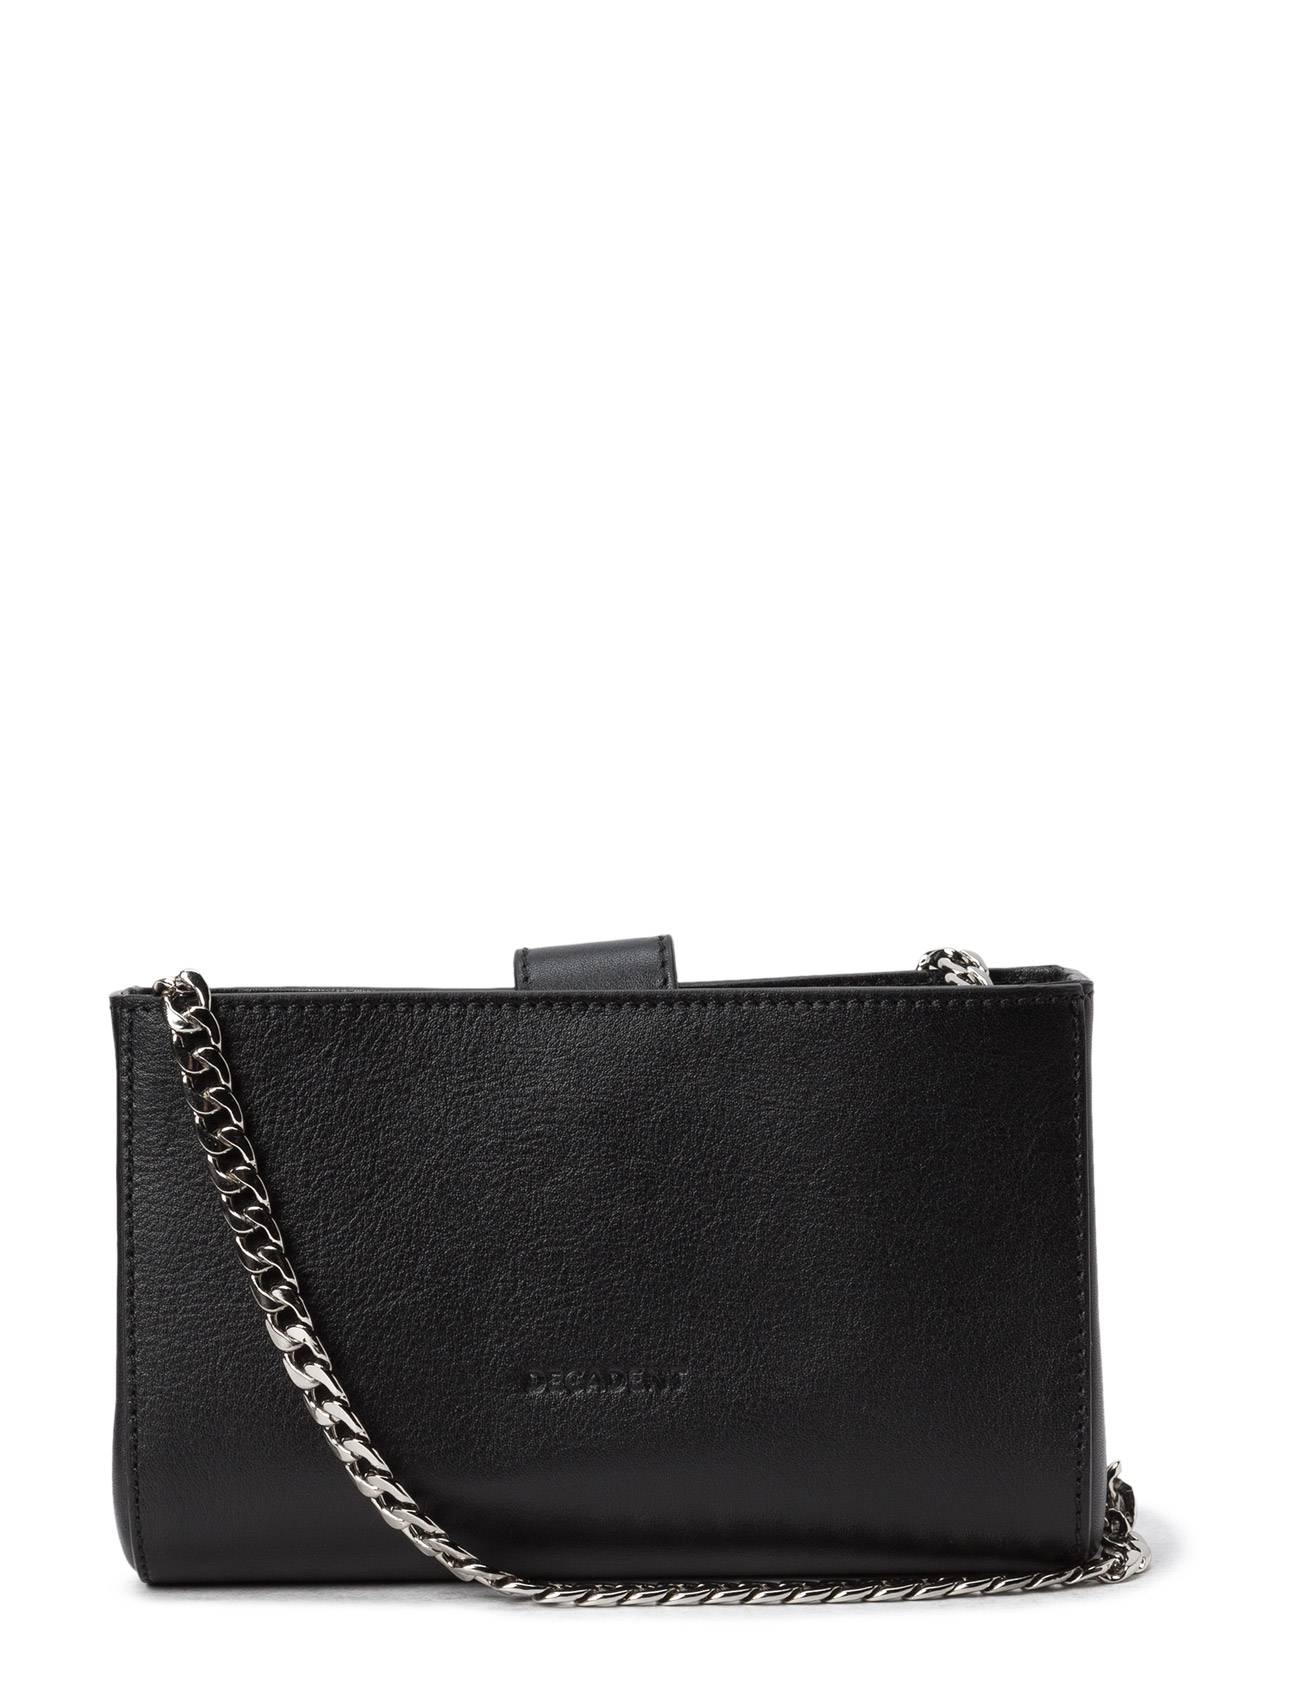 Decadent Tiny Open Cross Body With Chain